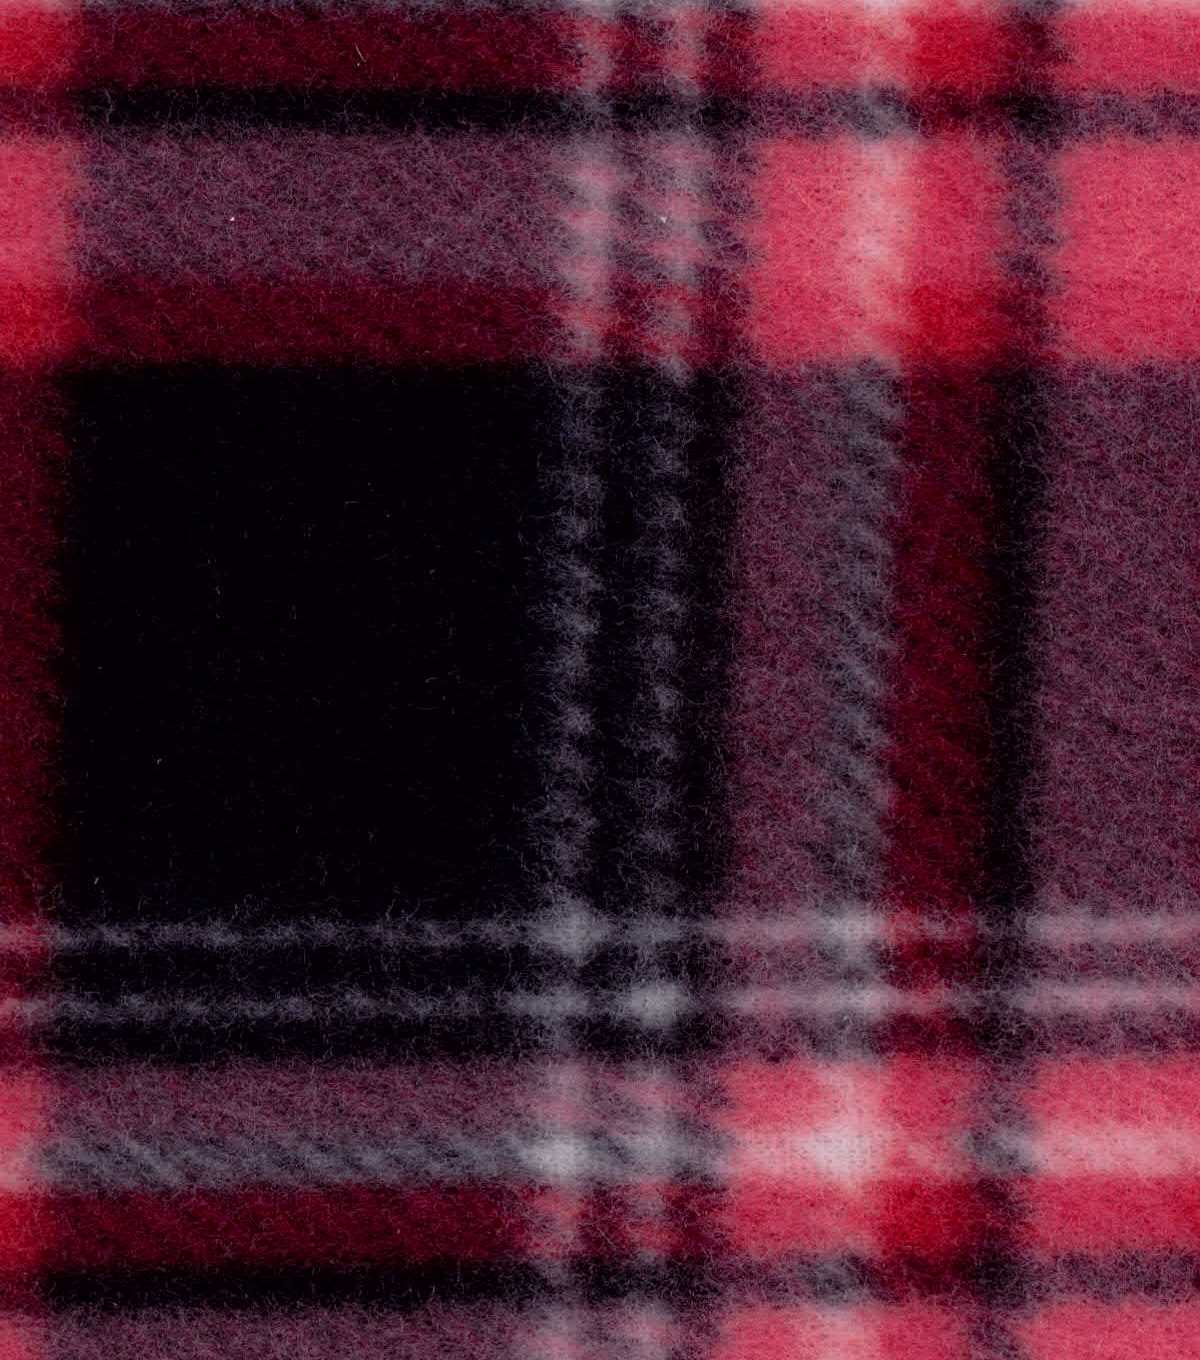 Blizzard Fleece Fabric -Red Black Plaid